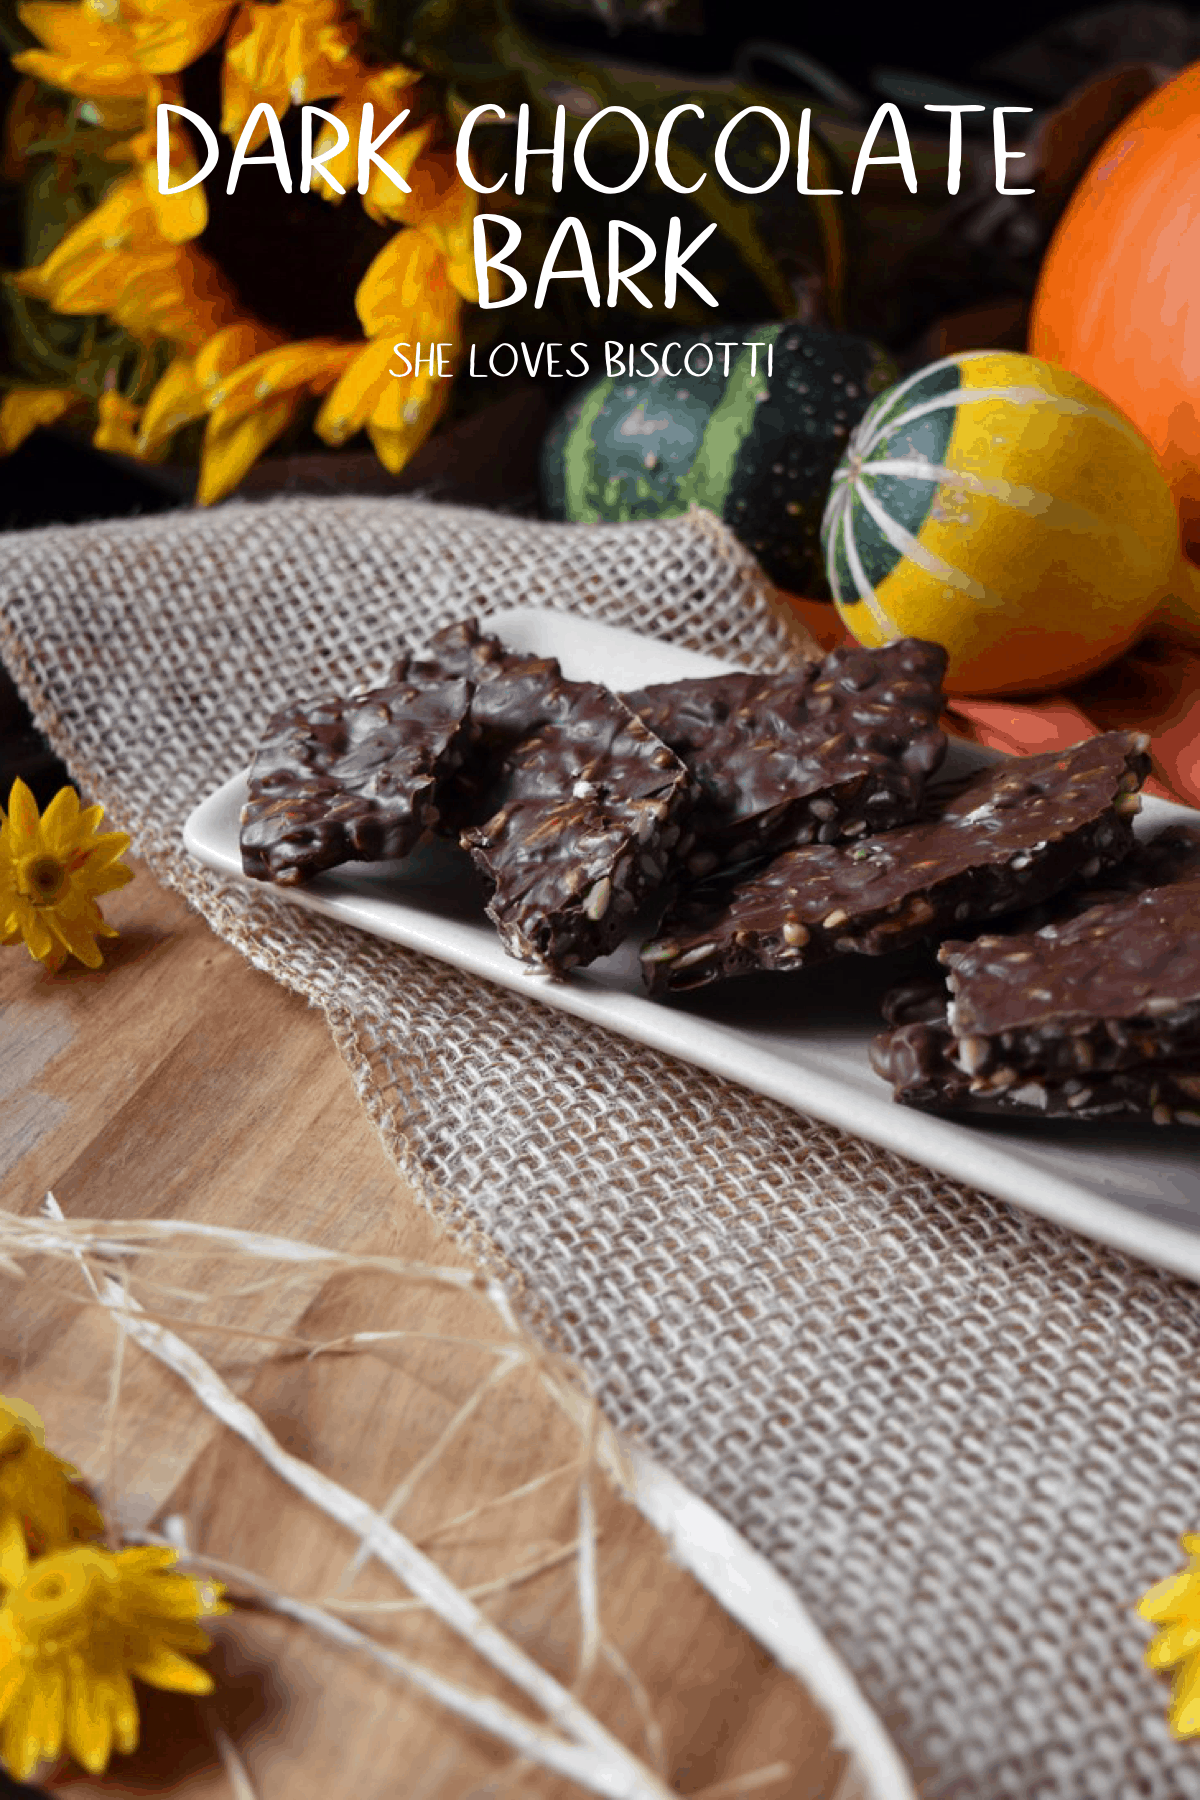 Dark Chocolate Nut Bark -make your own healthy homemade version  in less than 30 minutes. #shelovesbiscotti #darkchocolate #chocolatebark #nutbark #darkchocolatebark